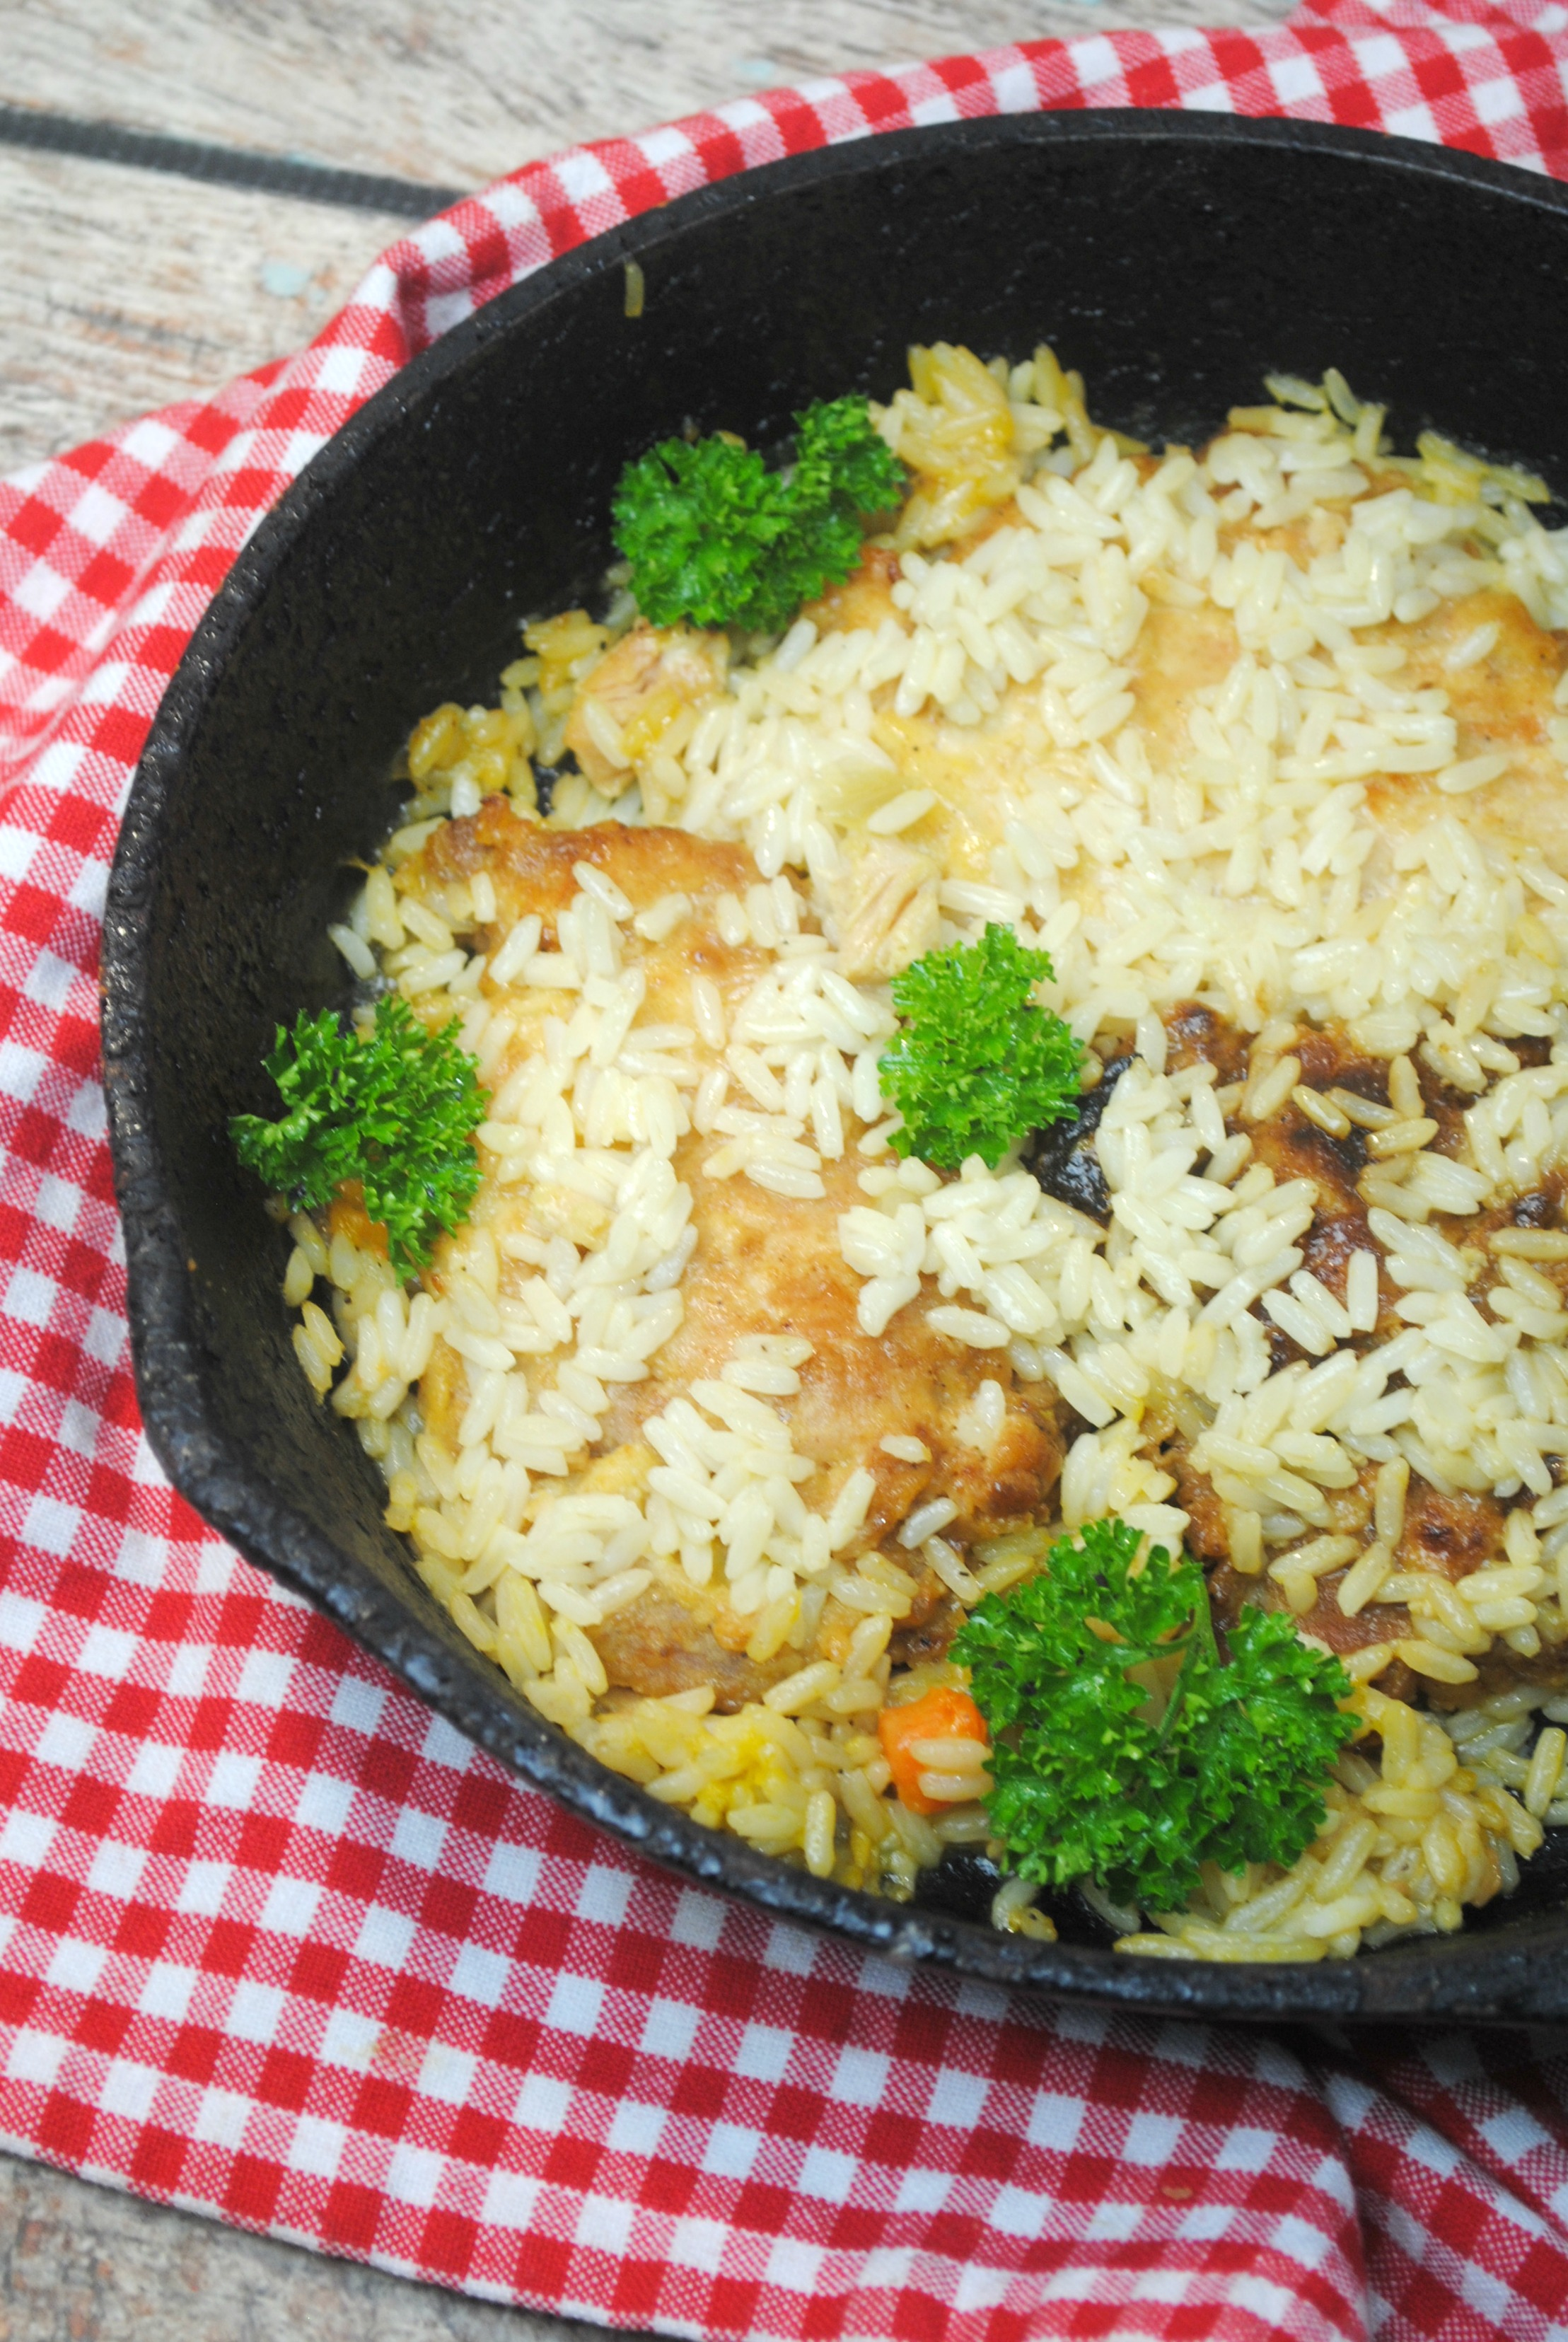 Cajun Pork Skillet Meal One-pot Meals that are perfect for dinner on a budget. Pork Skillet Meals make for easy clean ups.